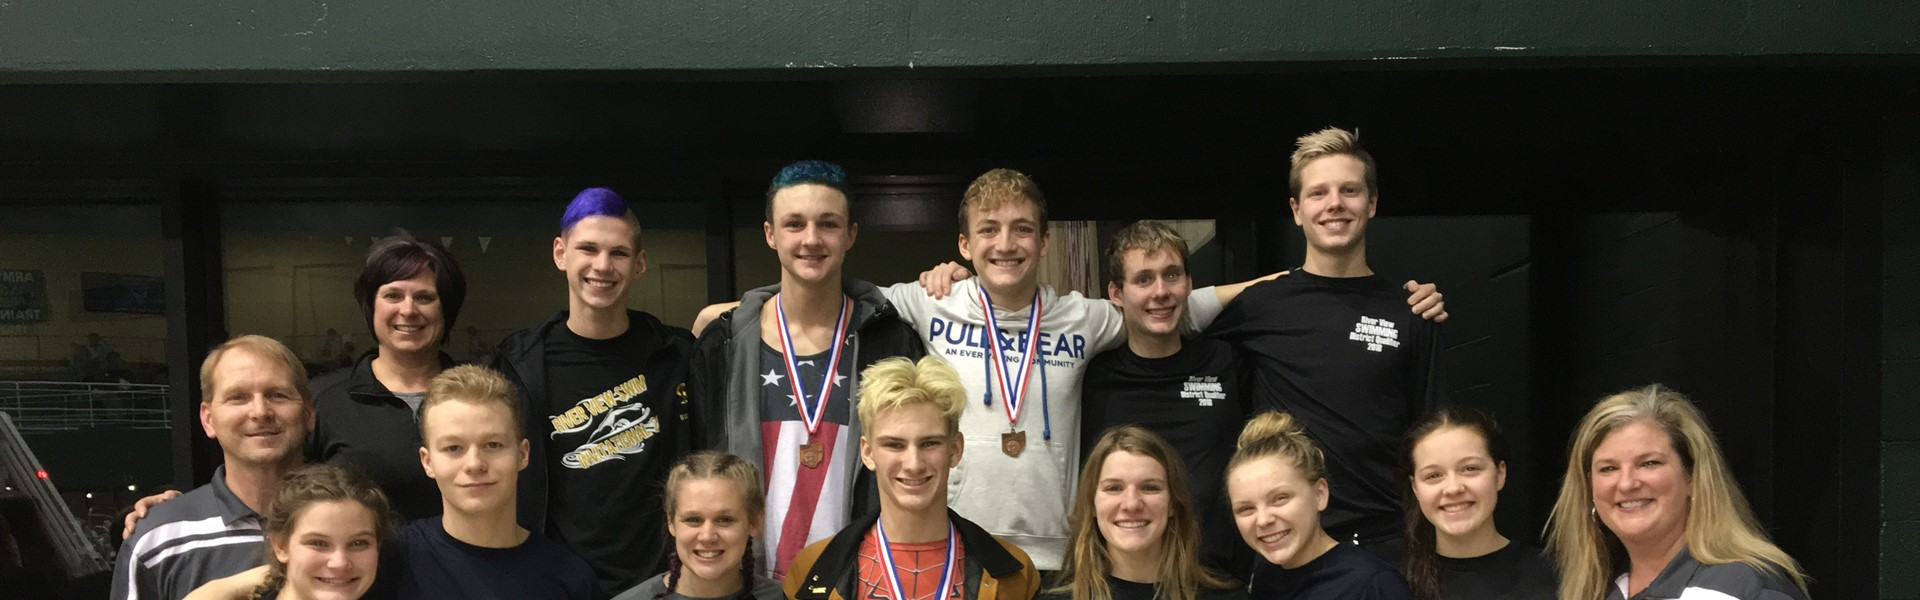 Congrats RV Swim team!